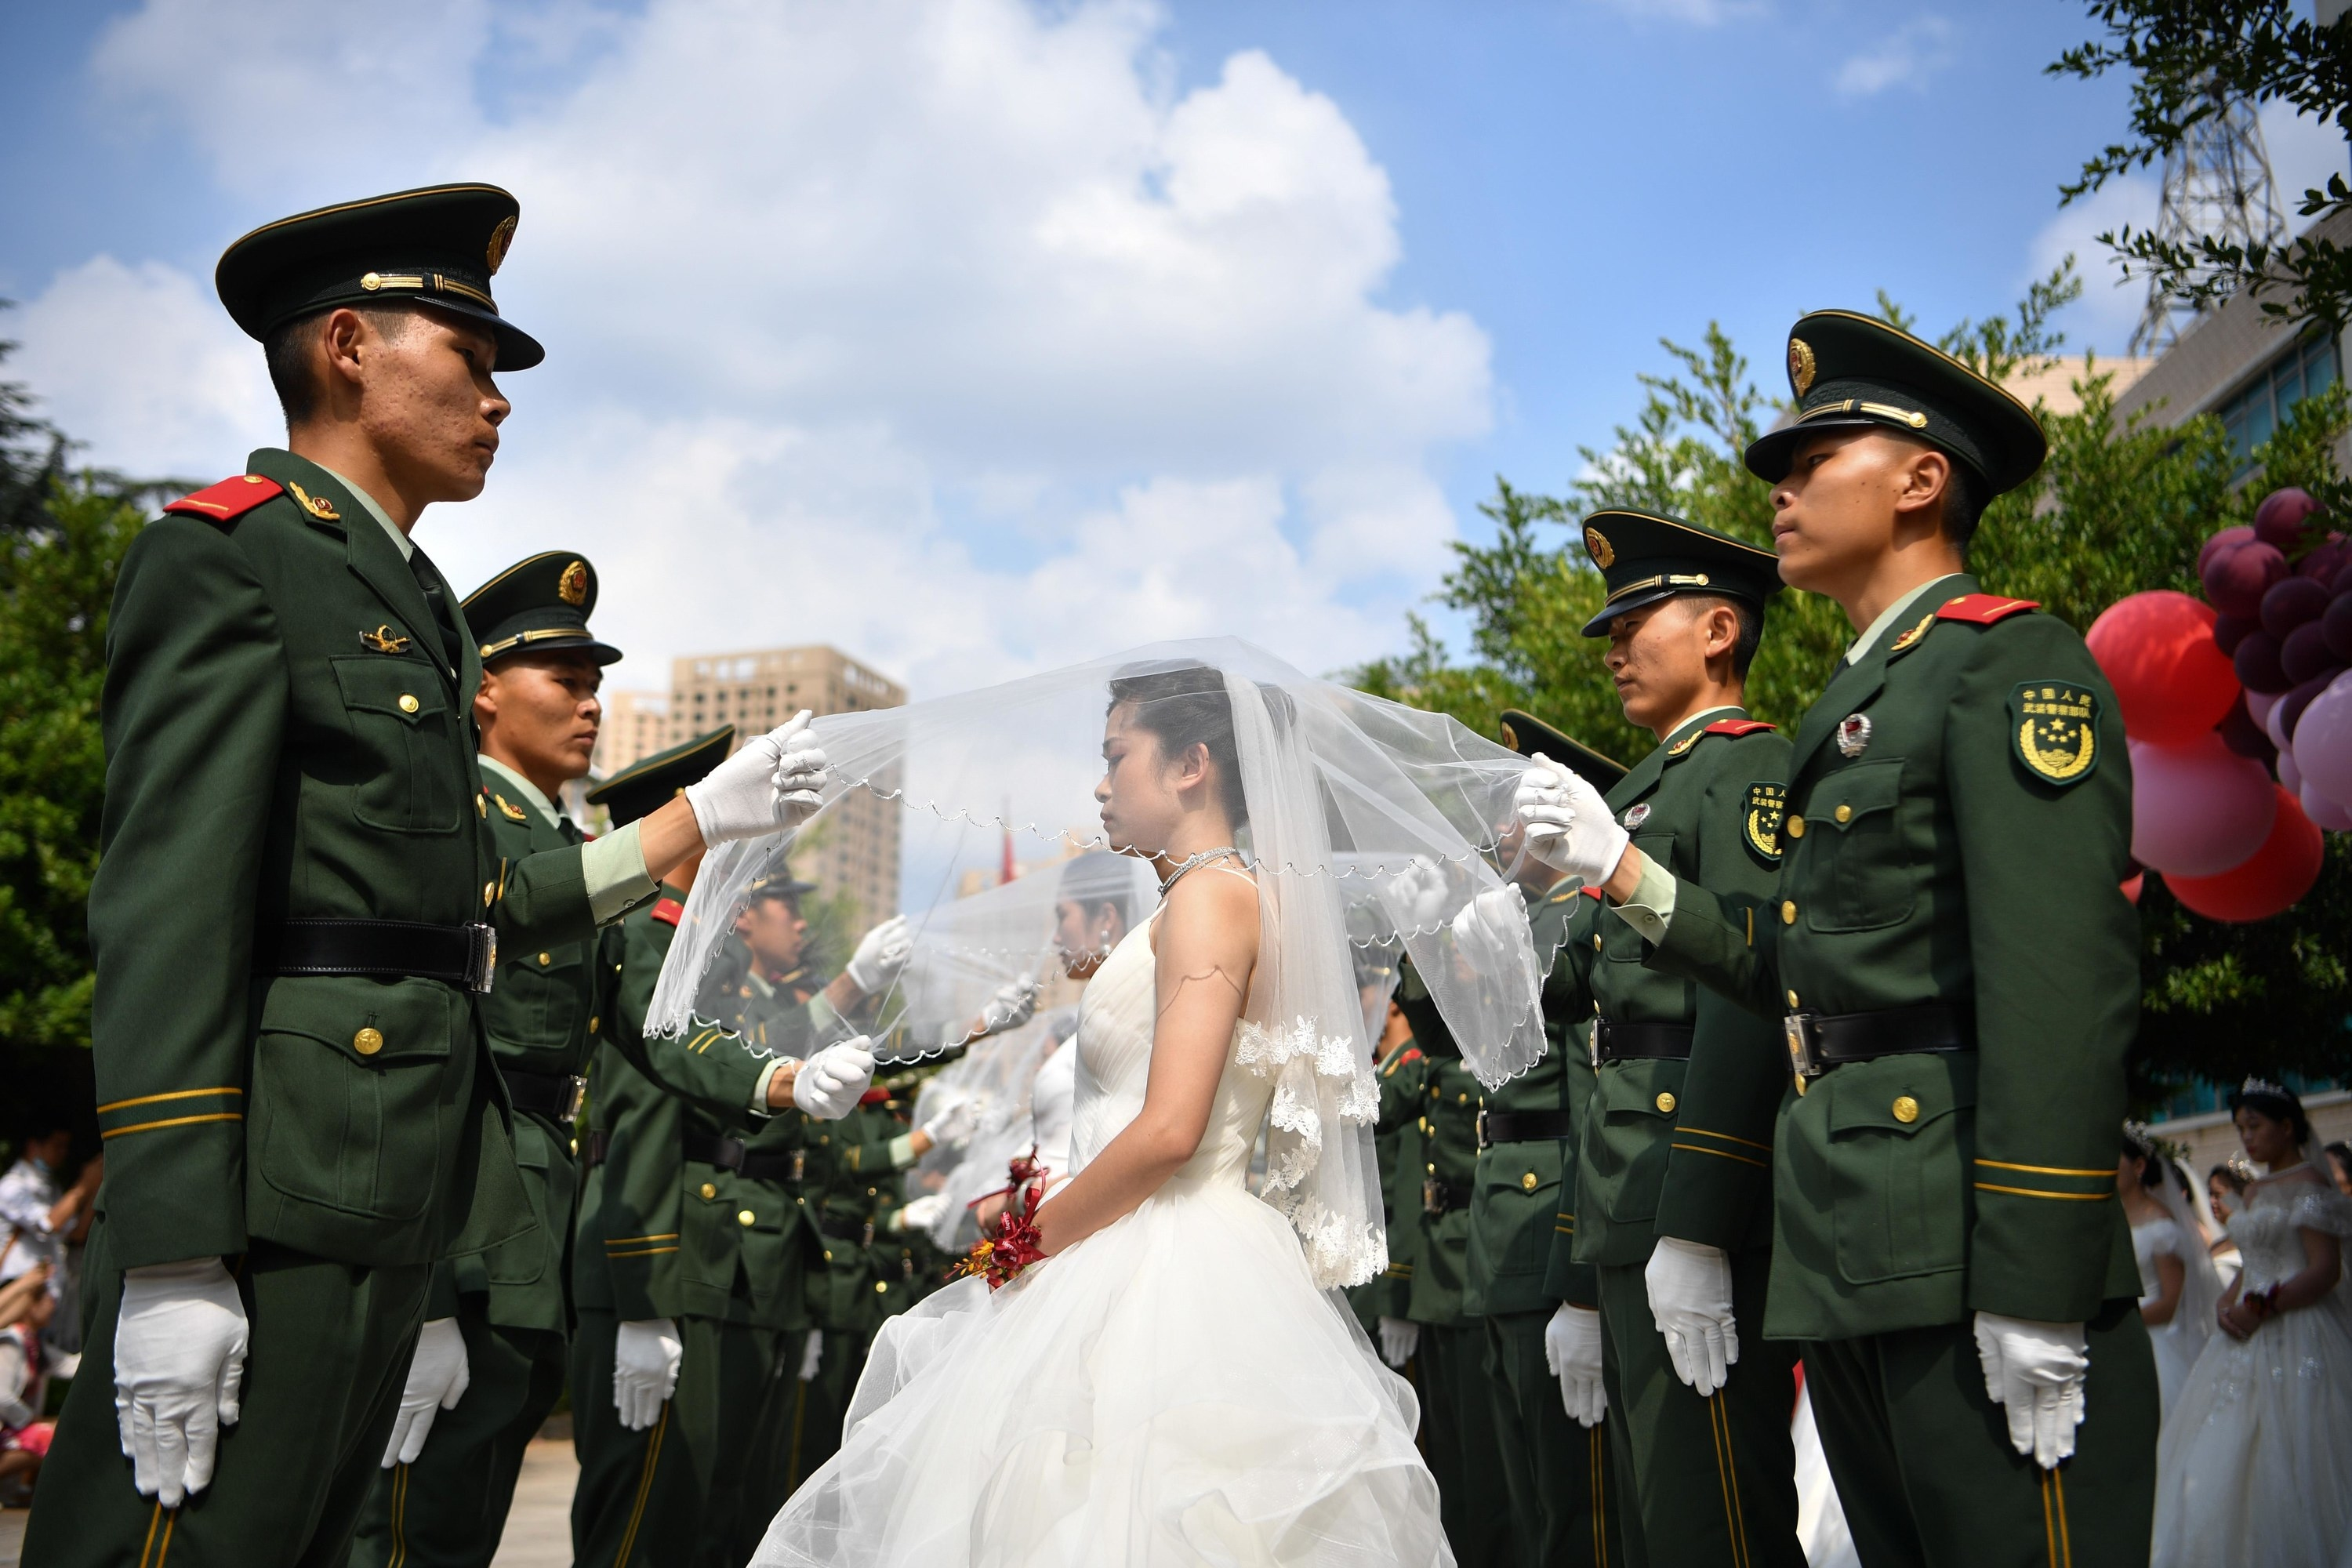 Two lines of soldiers in green formal uniforms, with a line of brides in white standing in between them